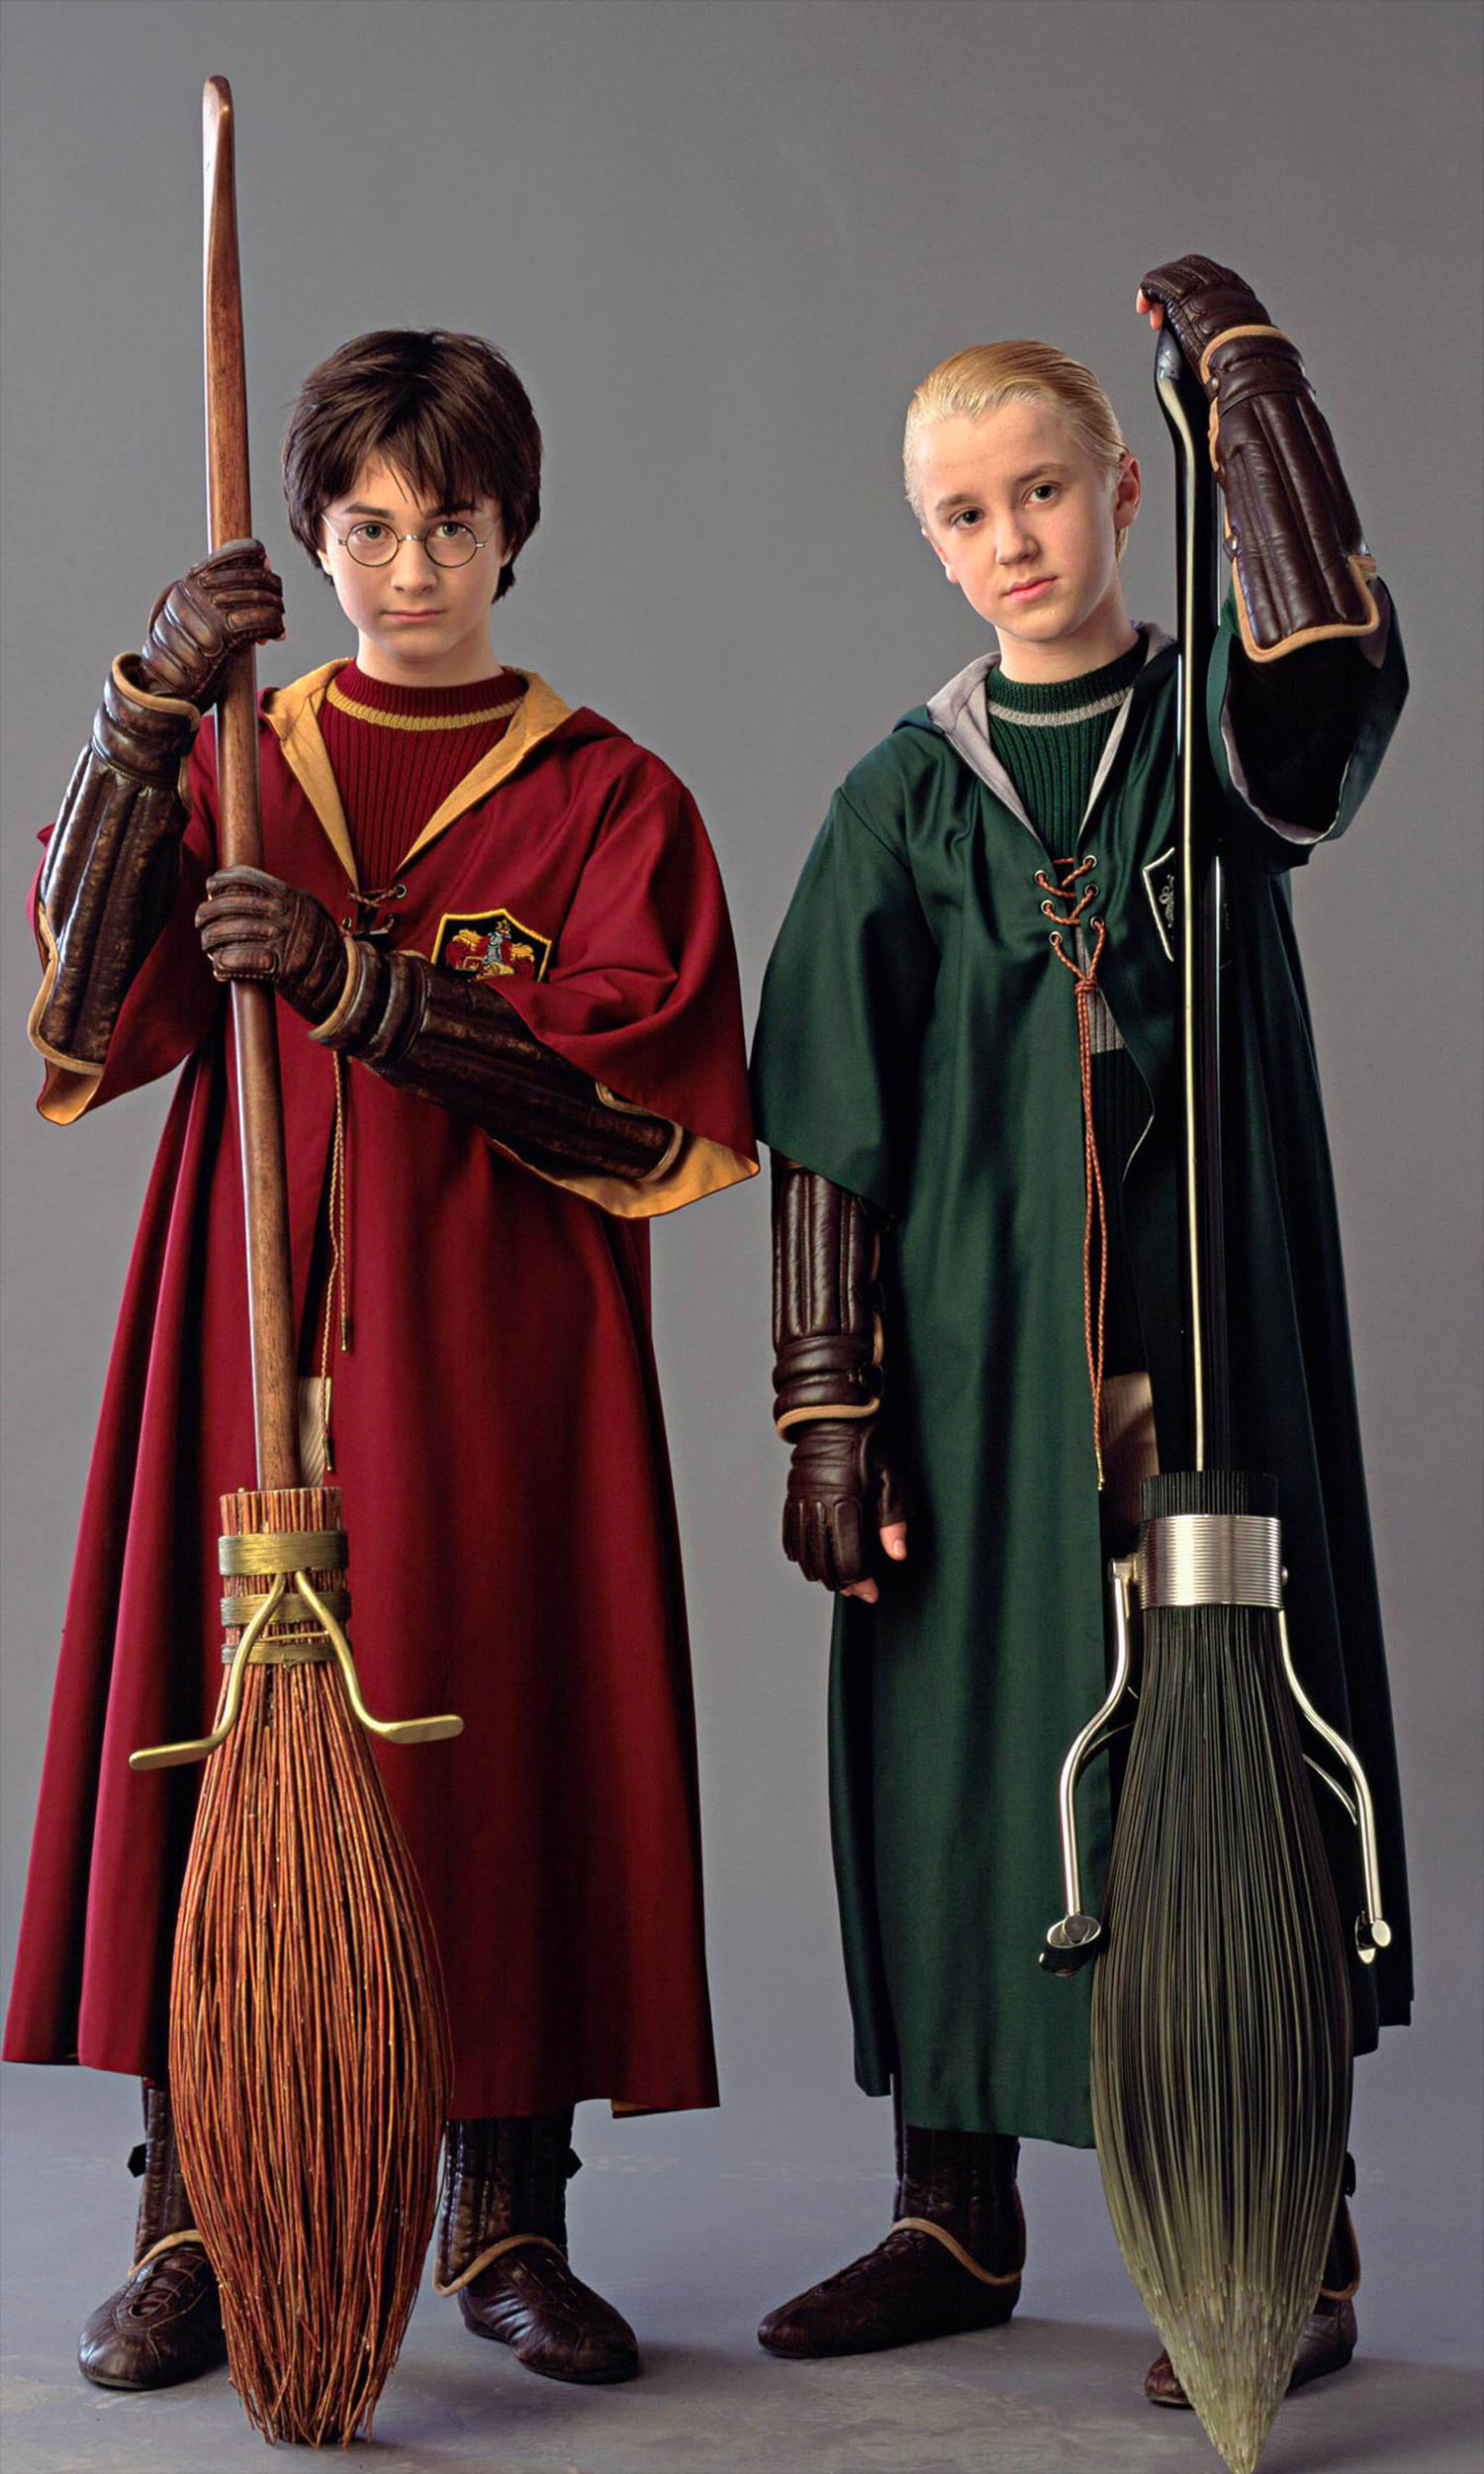 Portrait of Harry and Draco in Quidditch robes